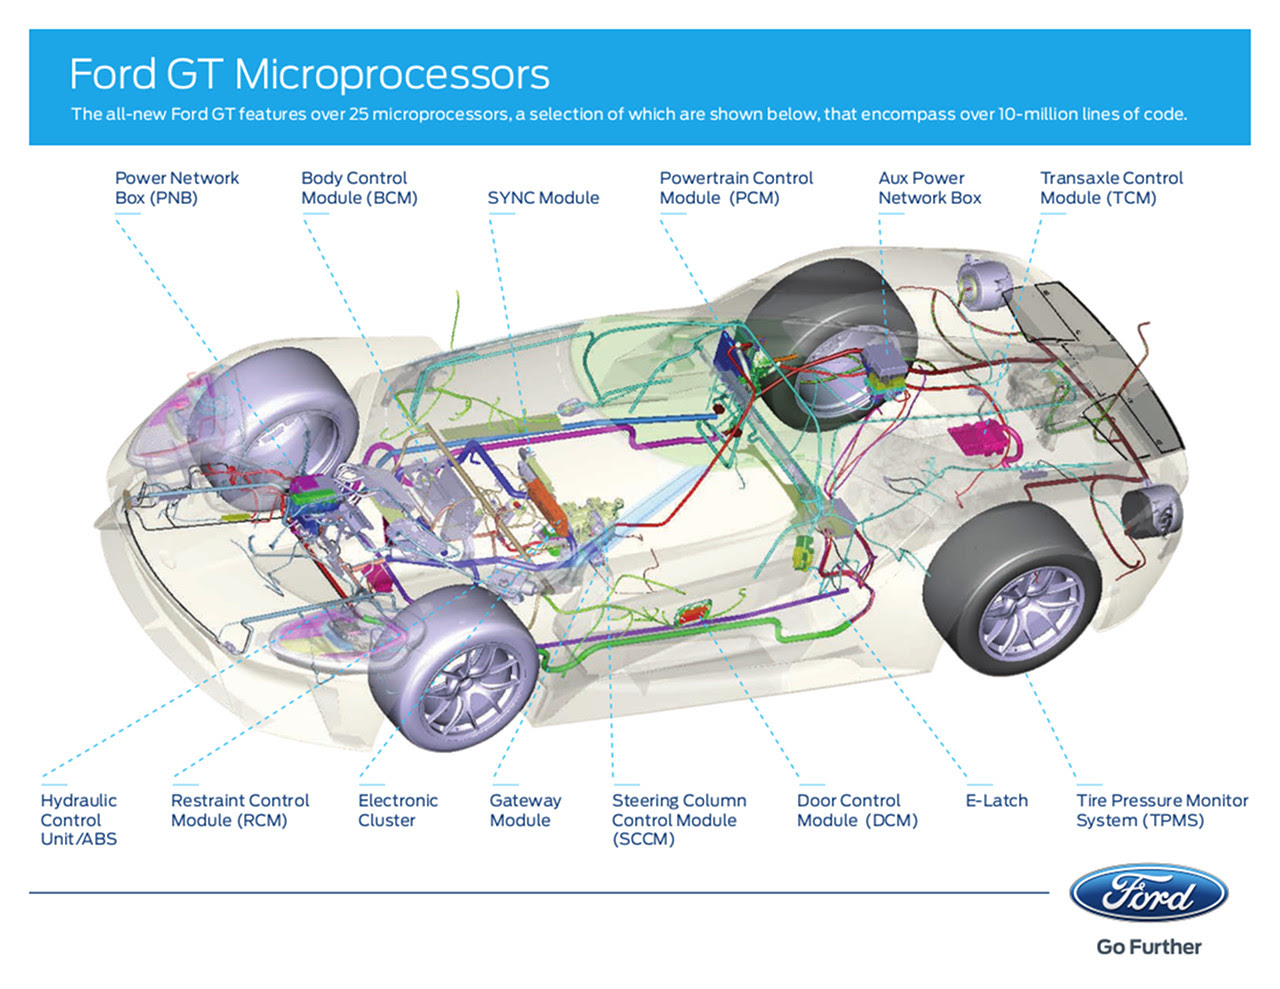 The 2017 Ford GT Has 25 Microprocessors | Ford Authority